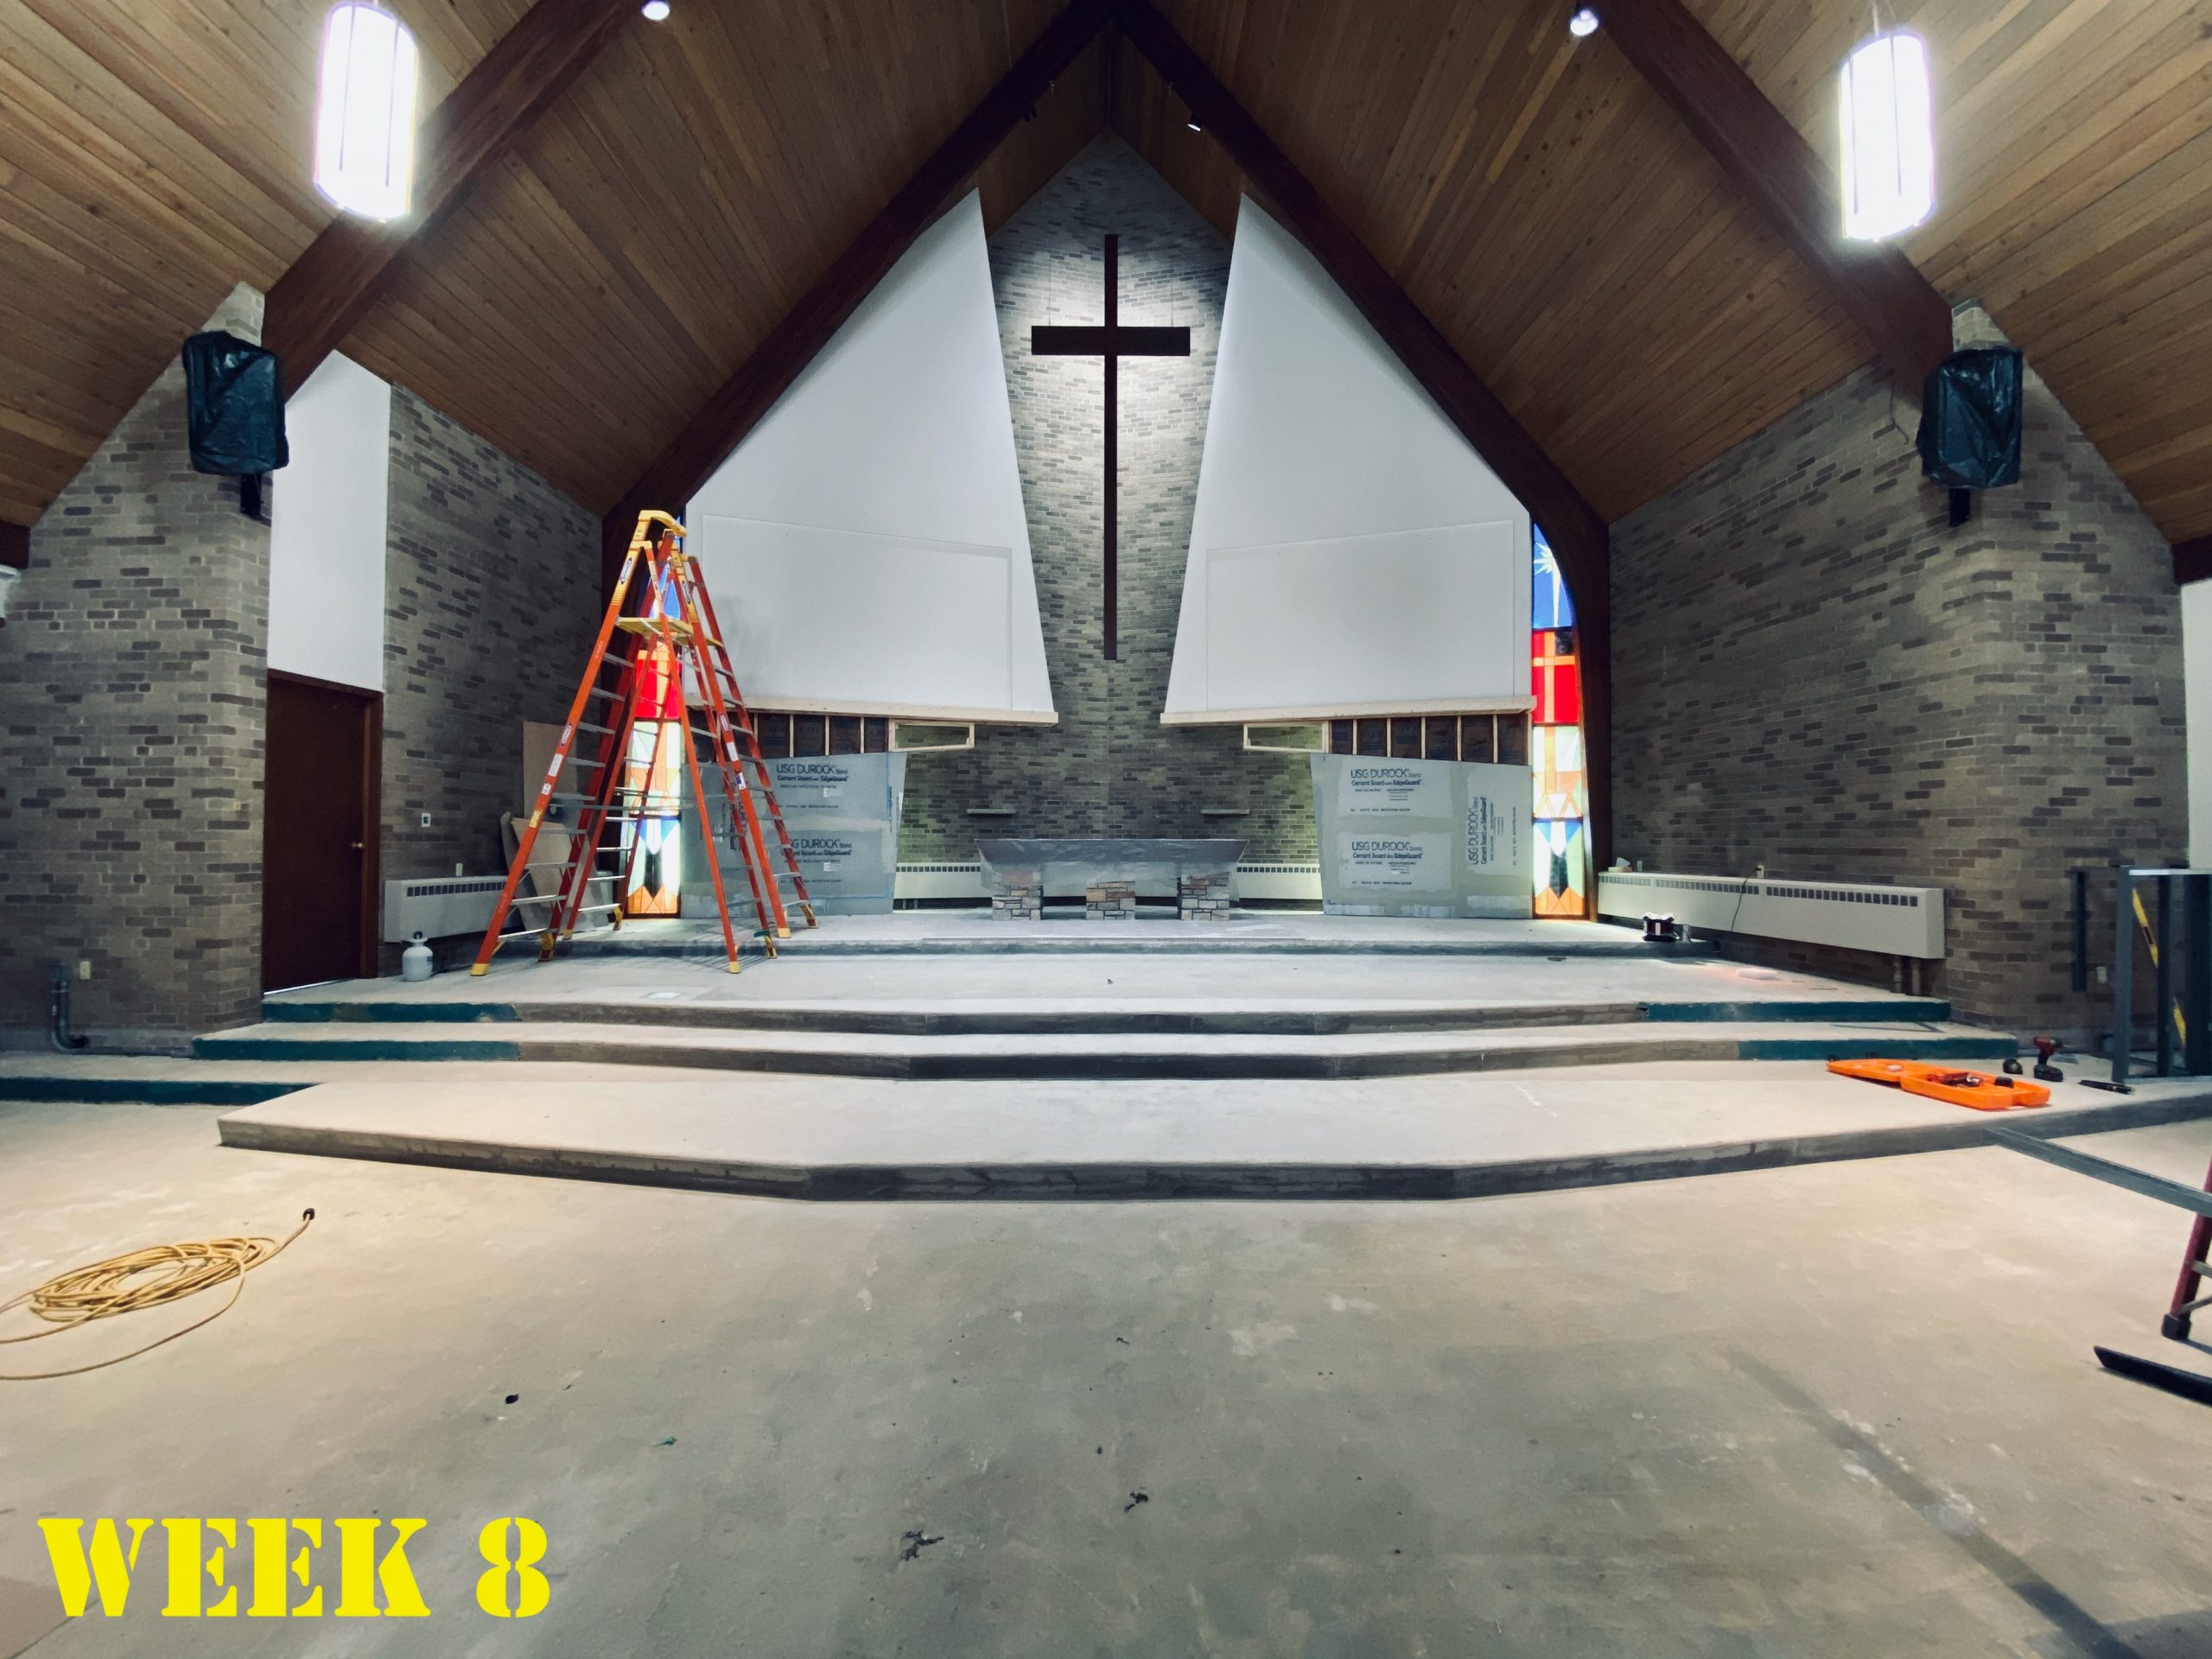 Week 8 Front